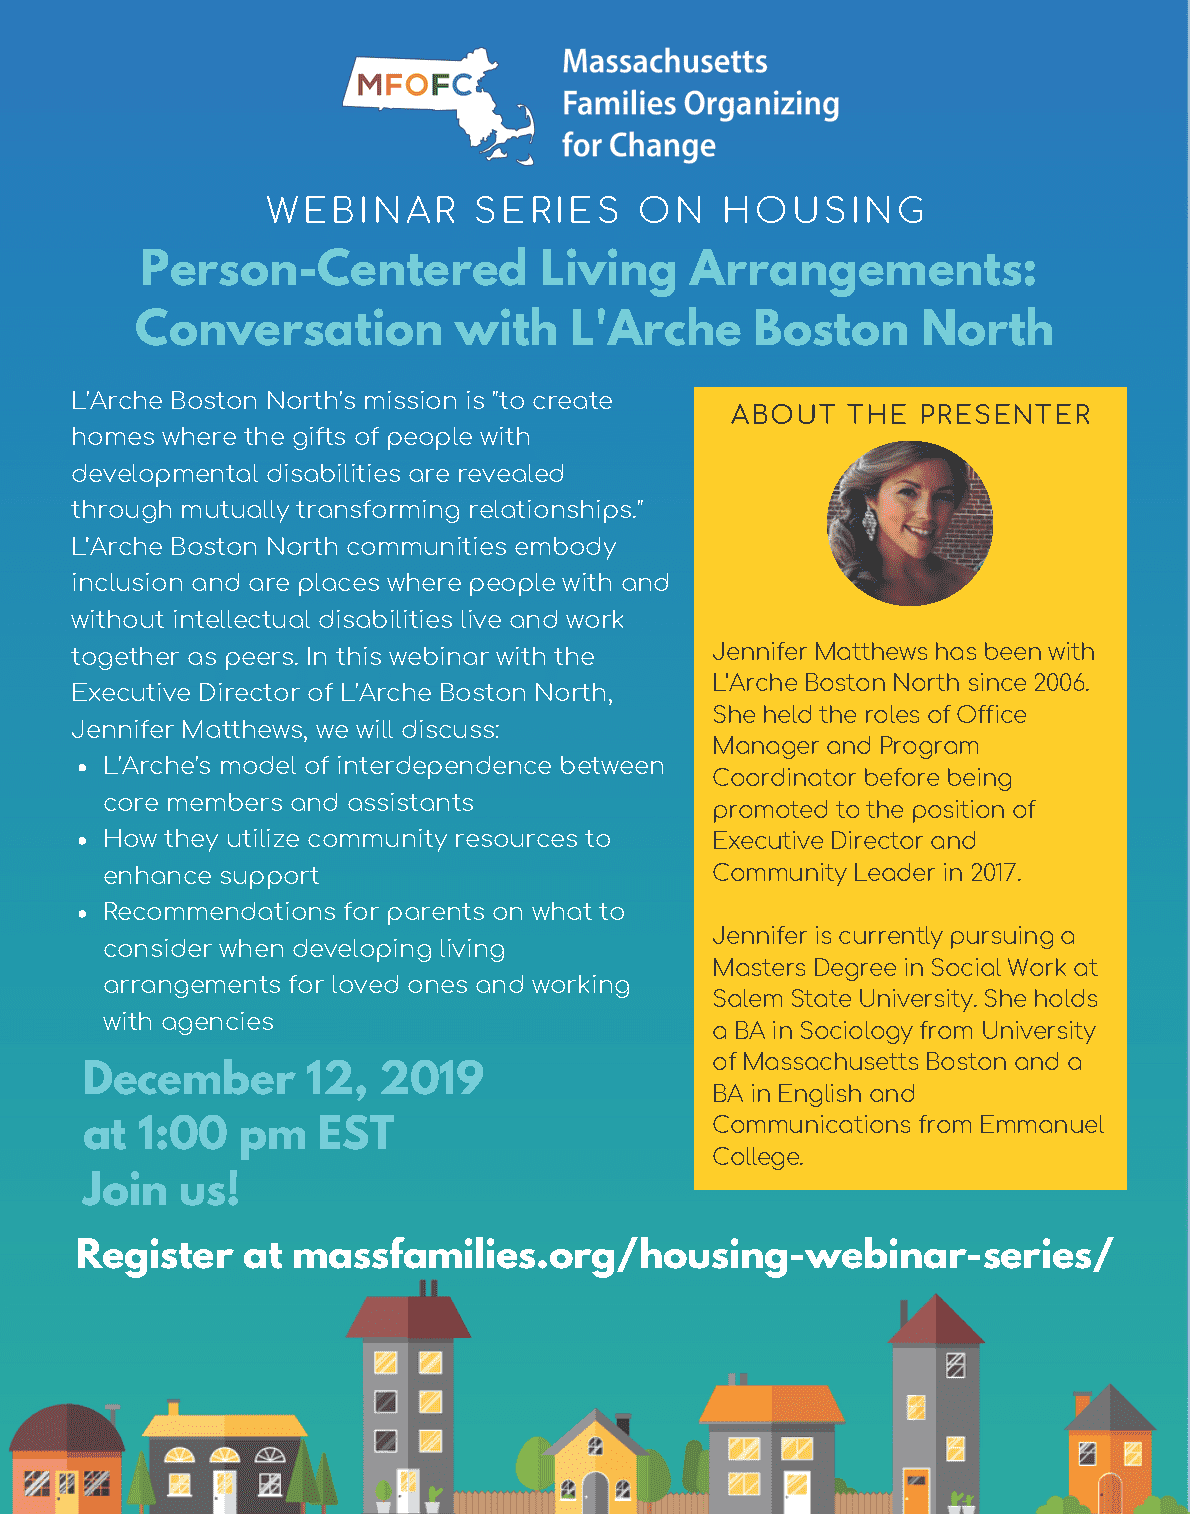 L'Arche Boston North Dec 12 2019 MFOFC Housing Webinar